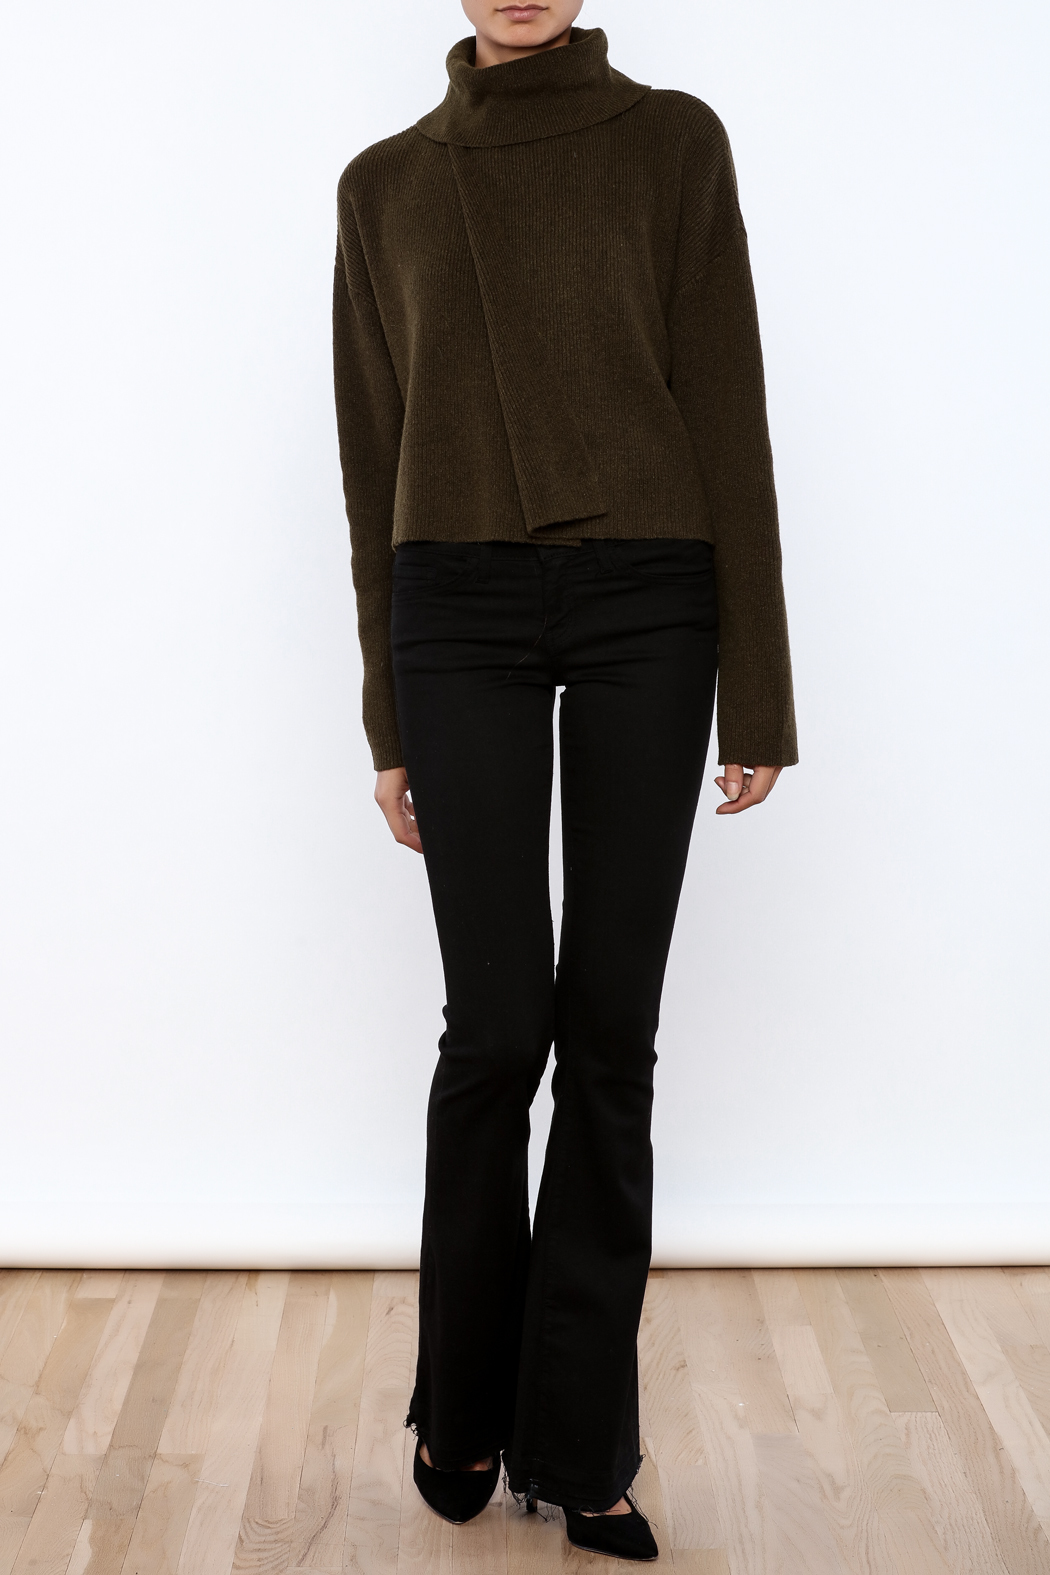 J.O.A. Turtleneck Crop Sweater - Front Full Image